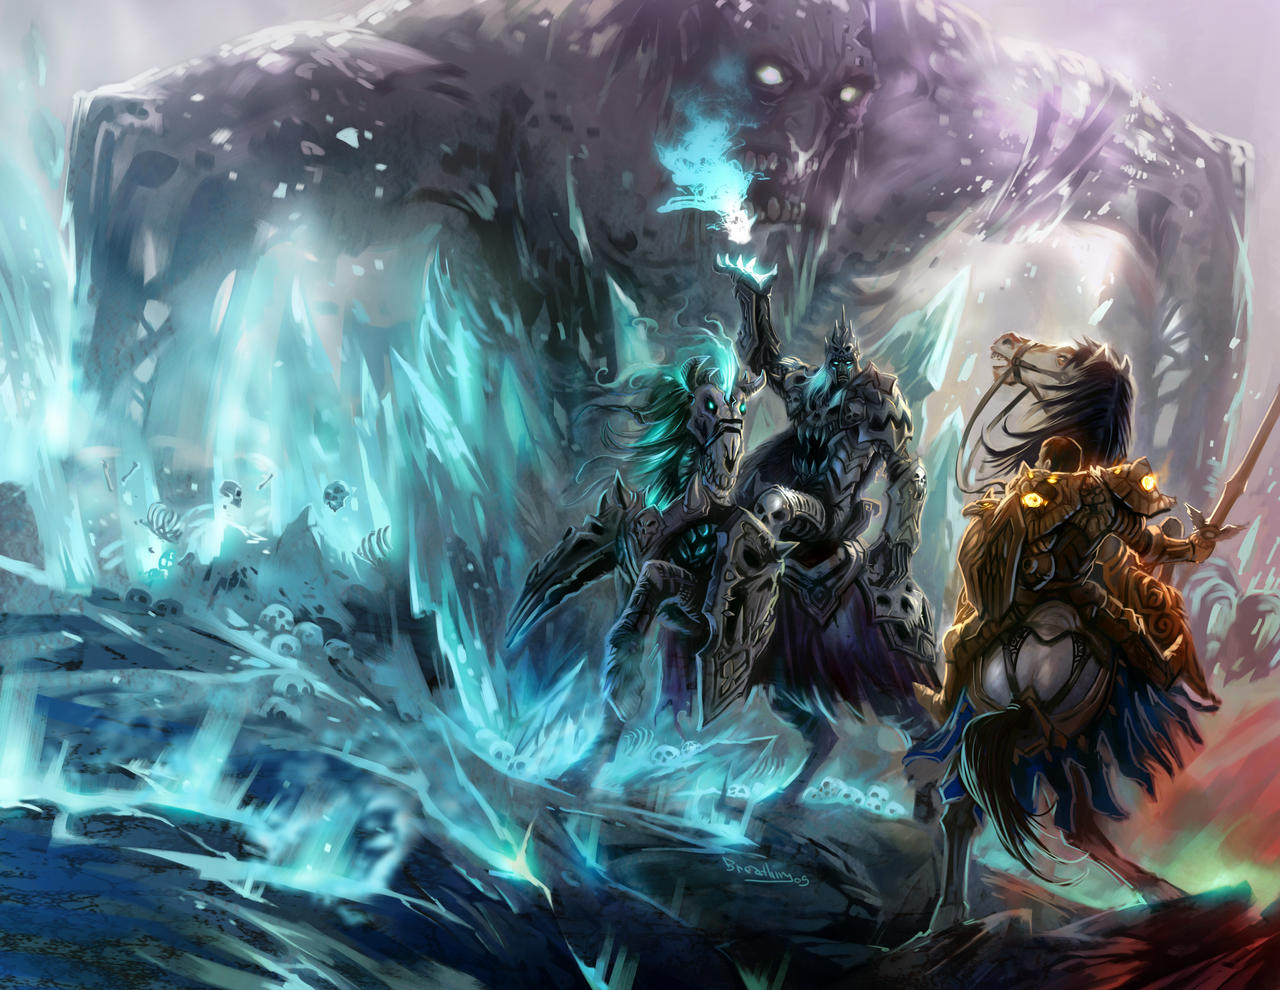 World of warcraf 3ds skin nackt picture